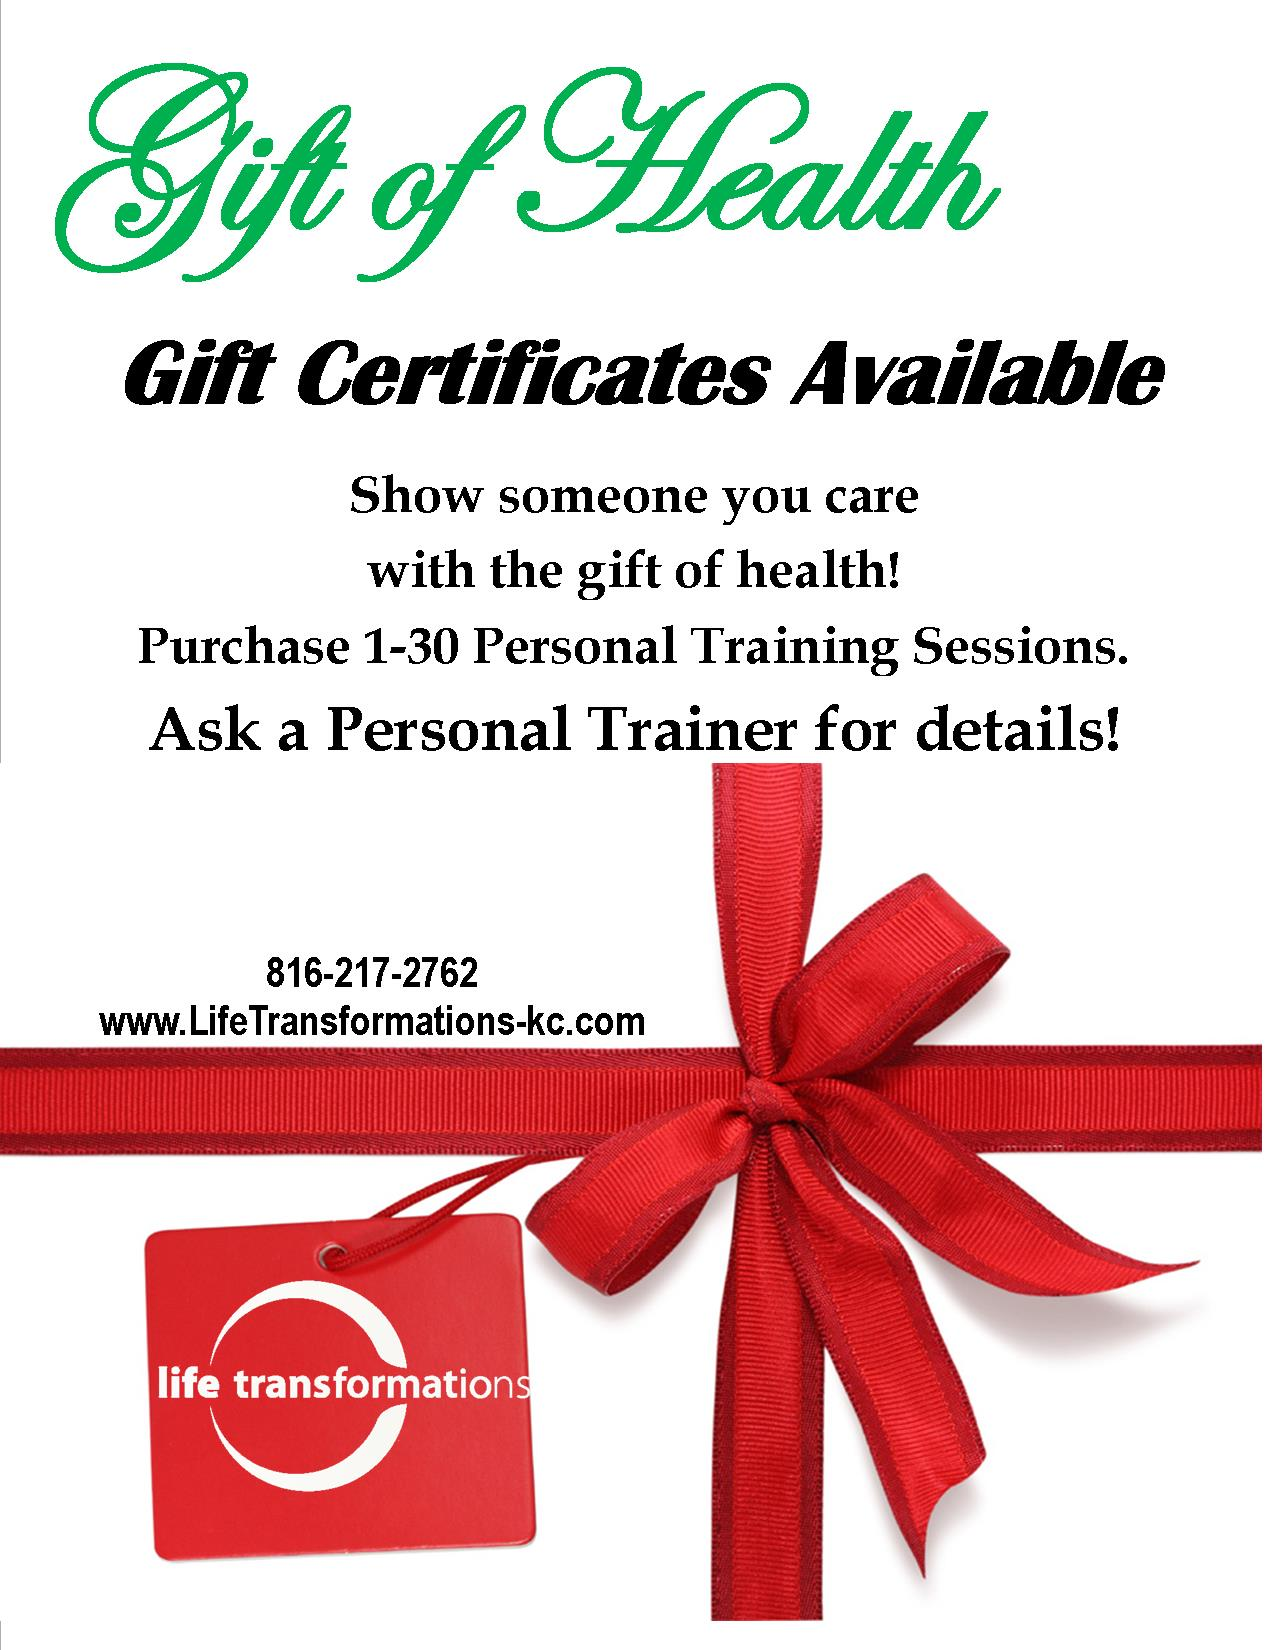 Personal training gift of health life transformations personal life transformations lees summit personal training holiday gift certificates xflitez Gallery